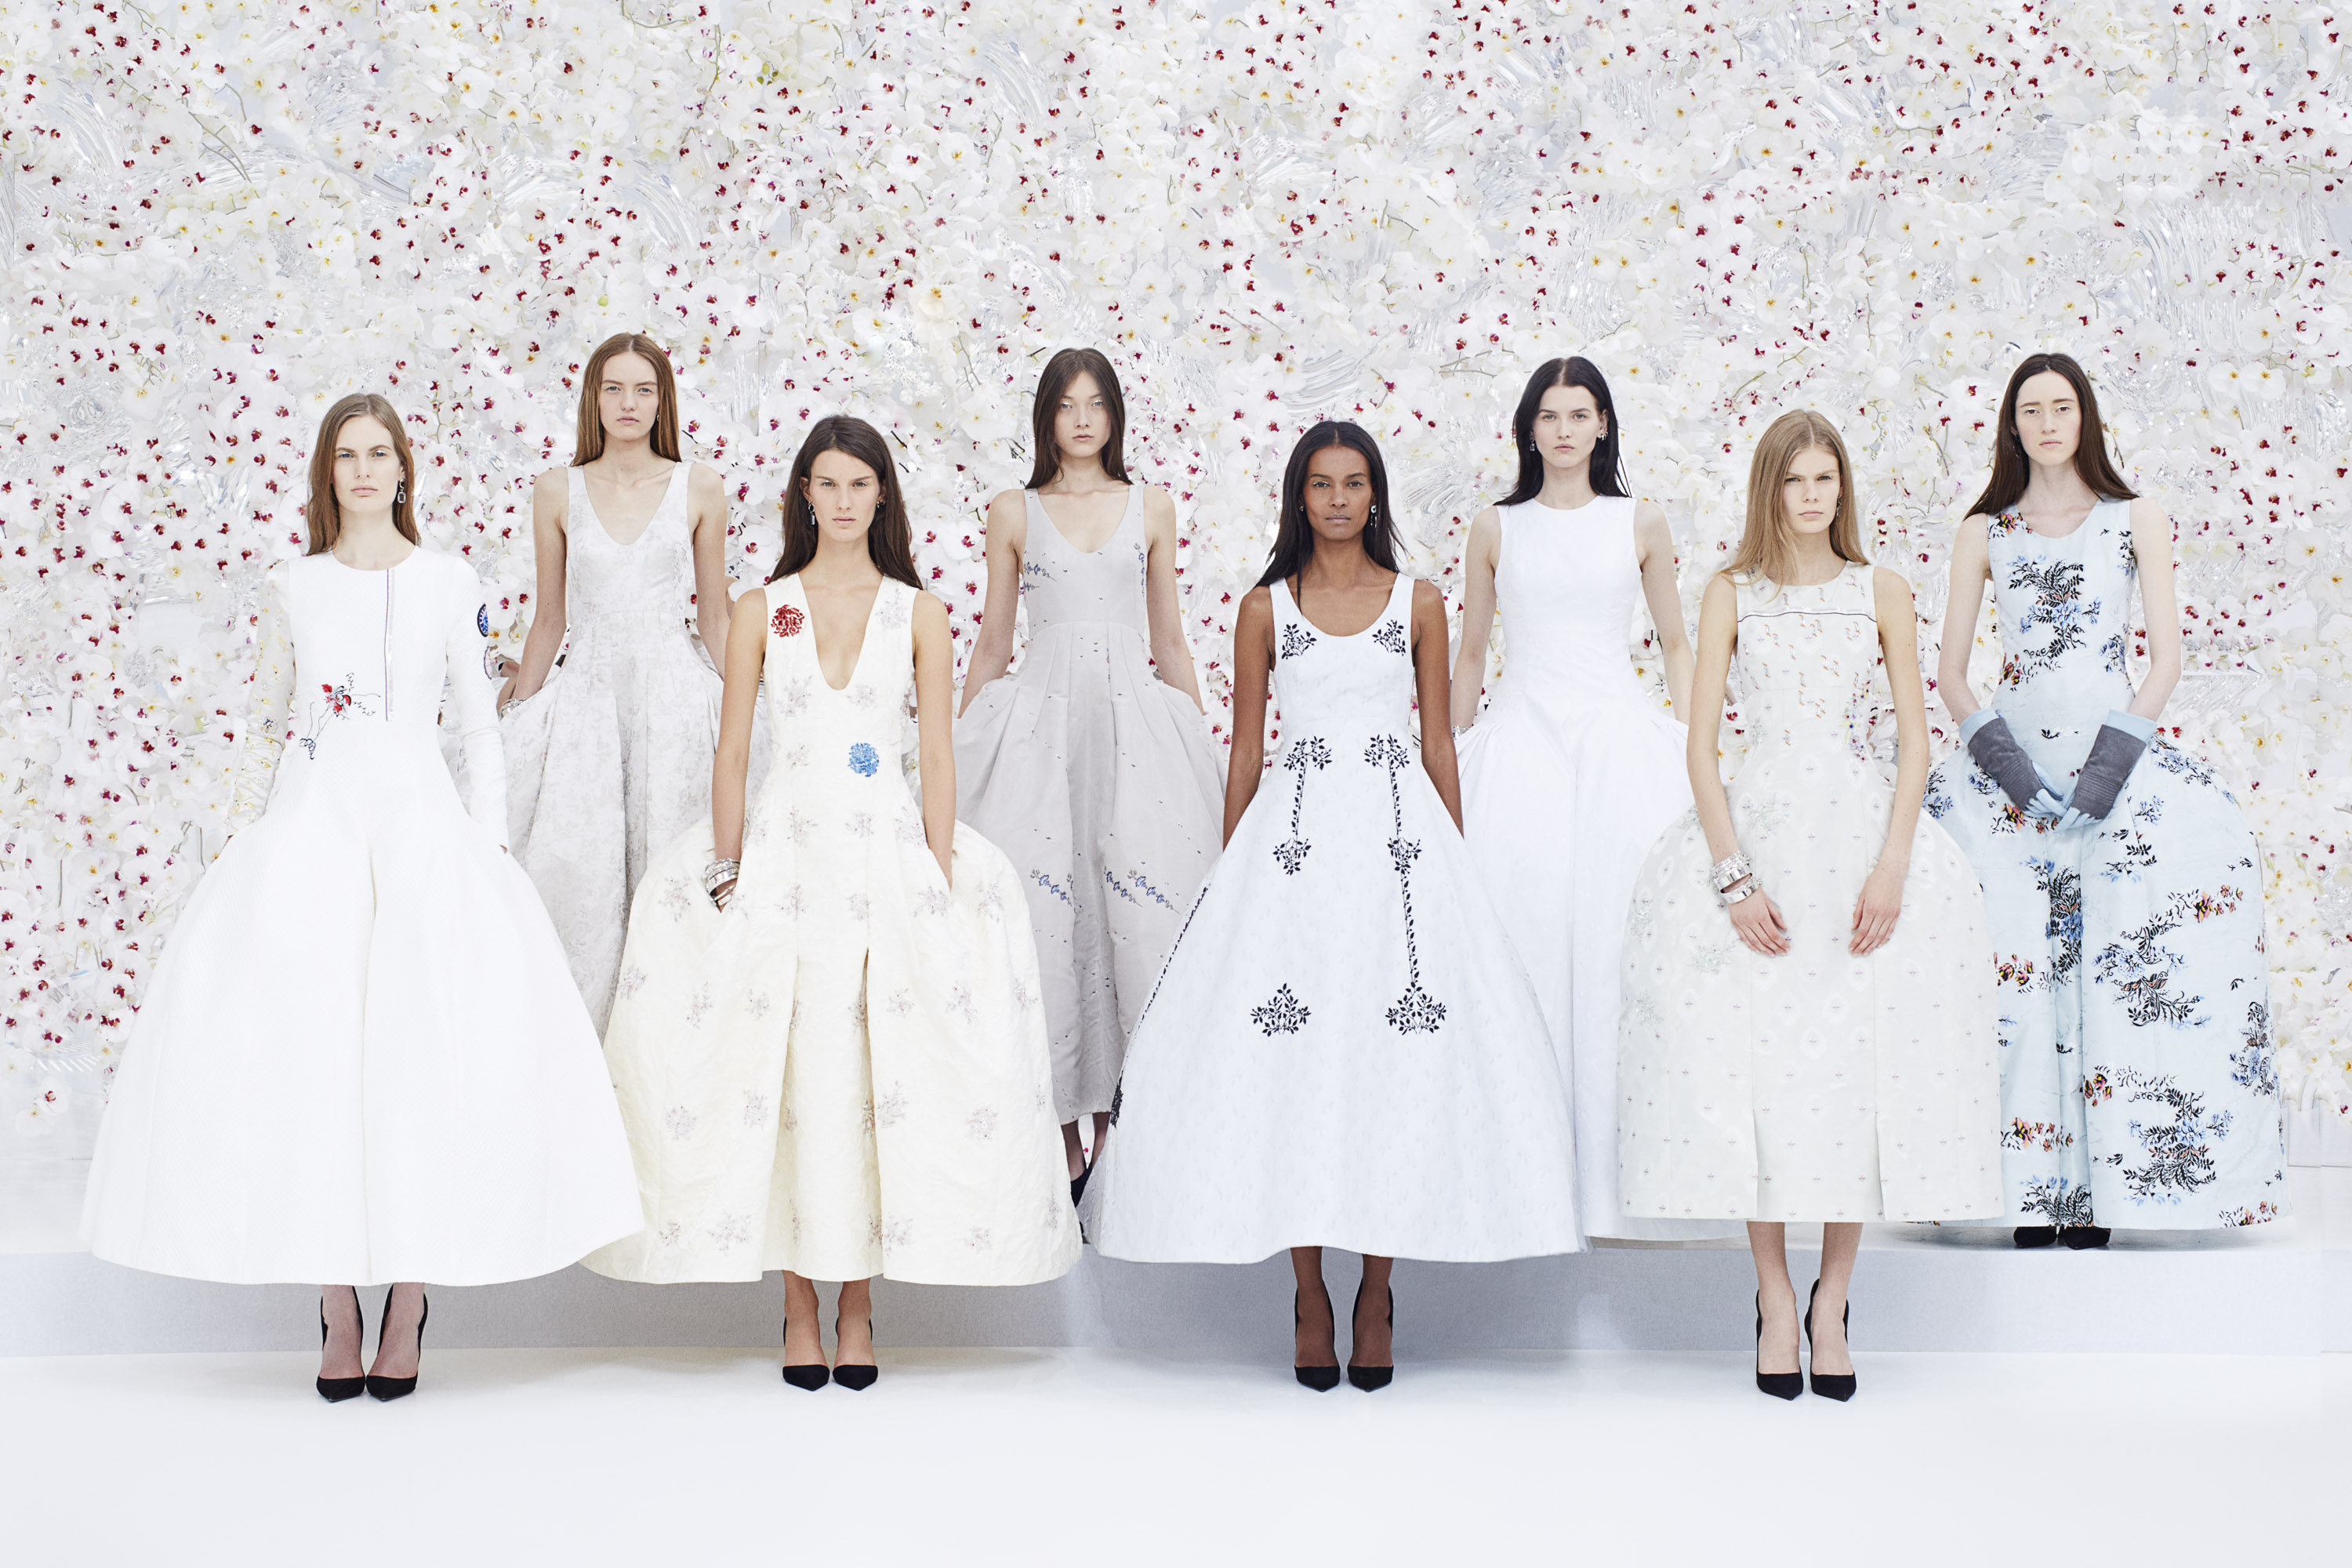 MEMBER-ONLY EVENT: A NIGHT WITH DIOR